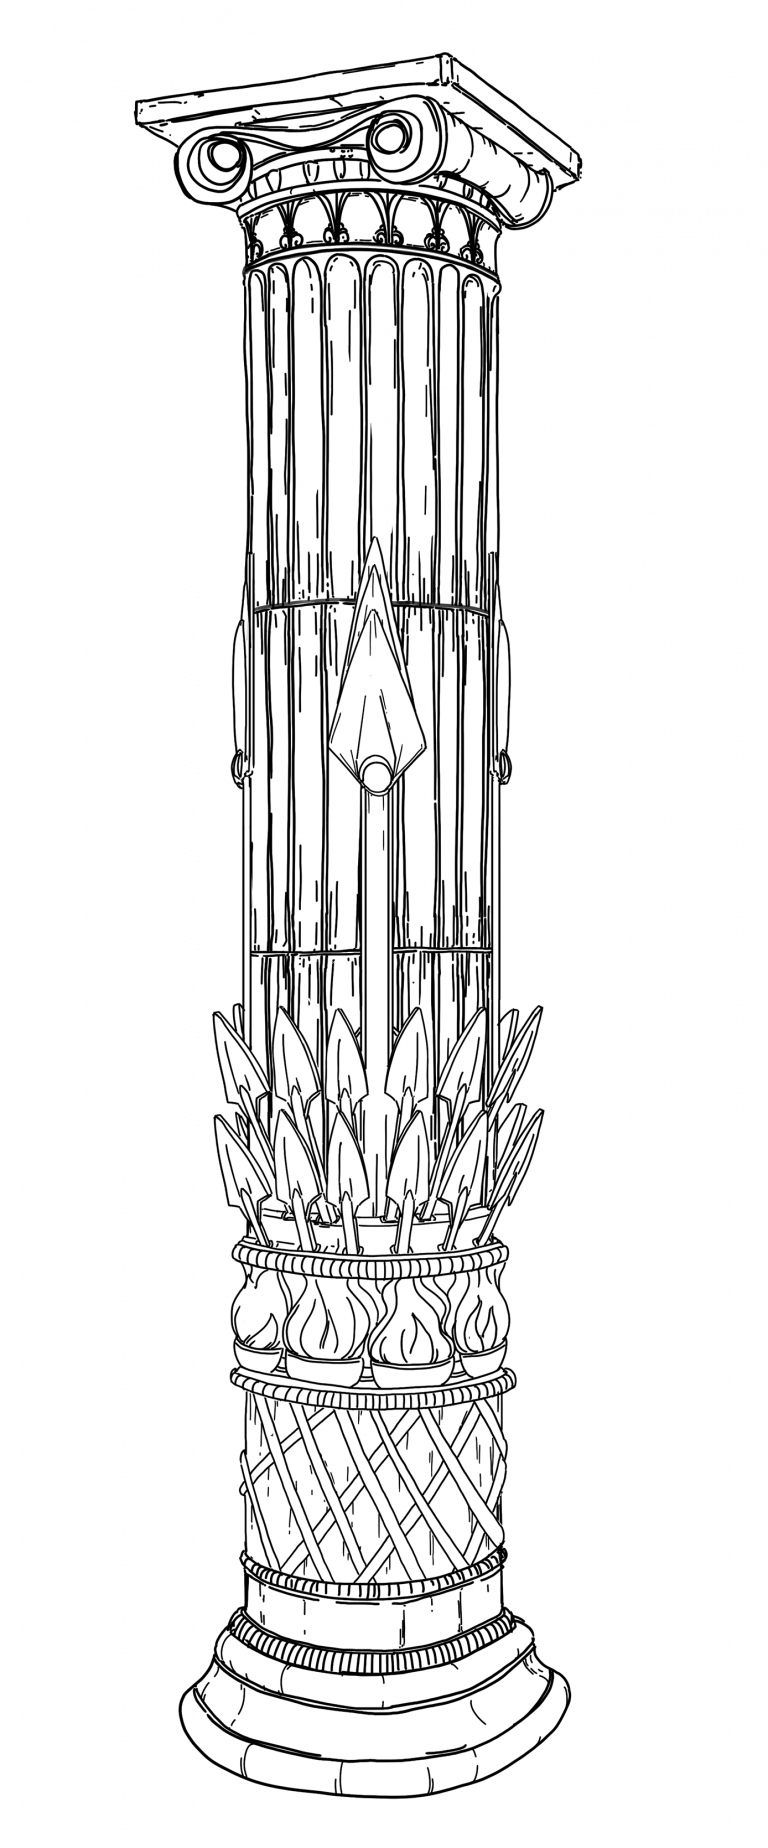 The Column of Ares